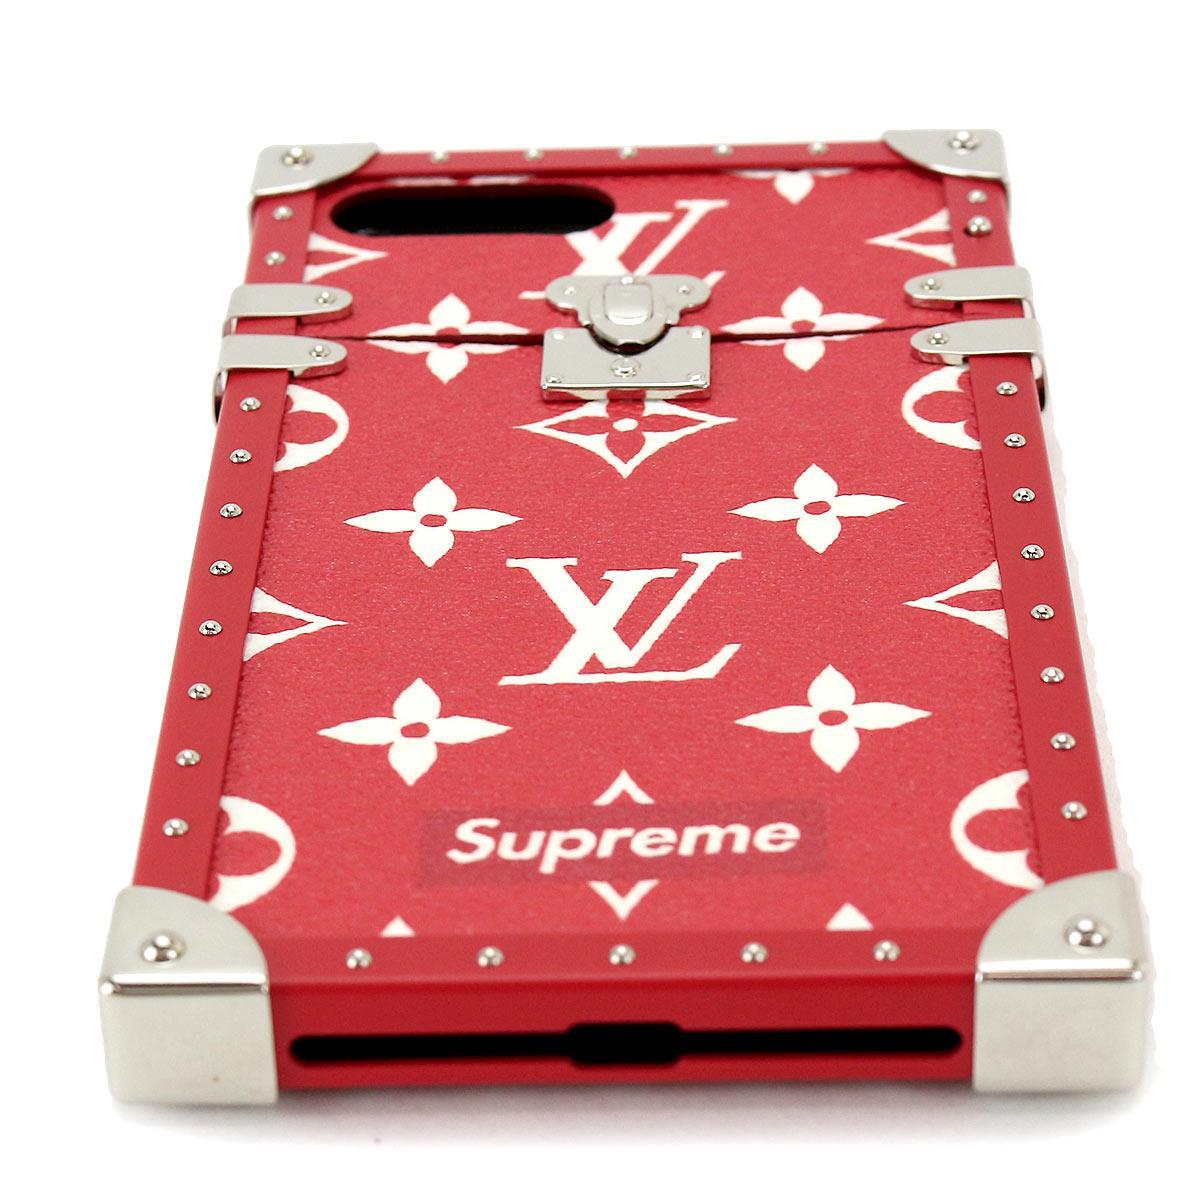 detailed look fff97 54601 Louis Vuitton LOUIS VUITTON シュプリームモノグラムアイトランク iPhone 7Plus case red white  M67758